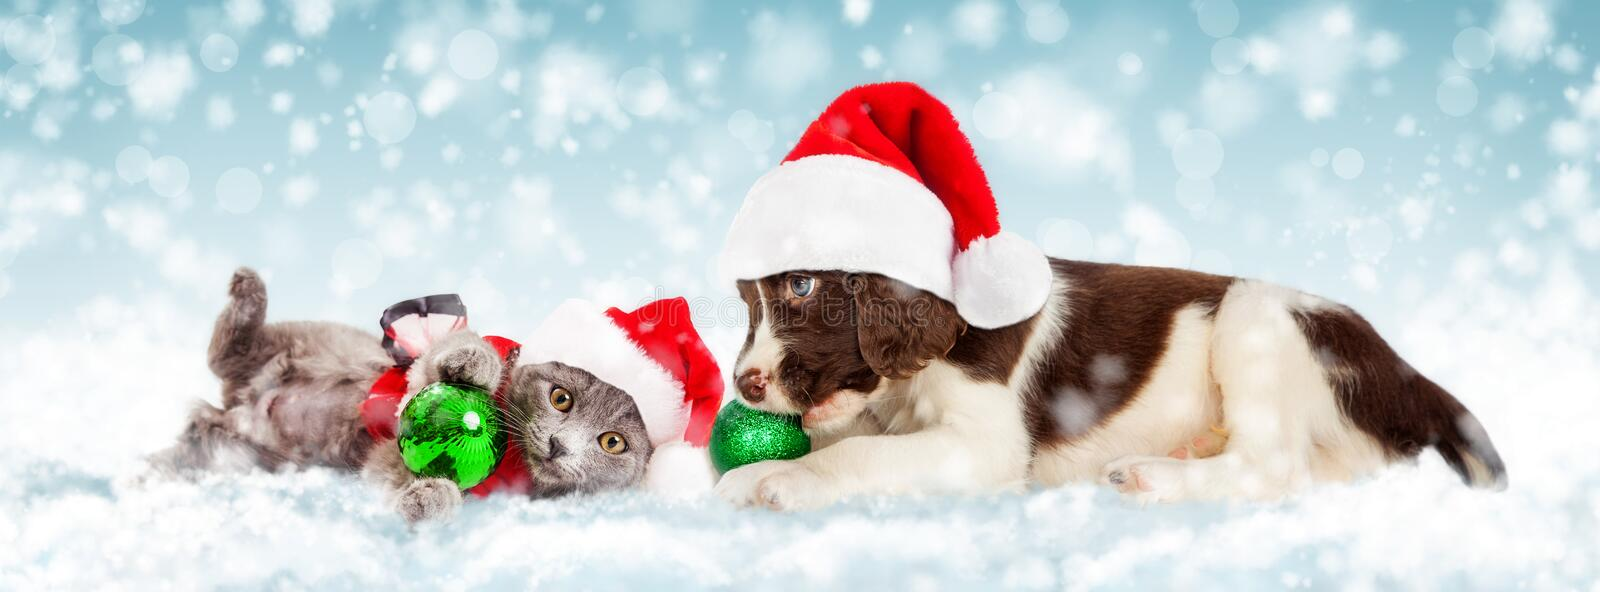 Christmas Puppy and Kitten in Snow royalty free stock image